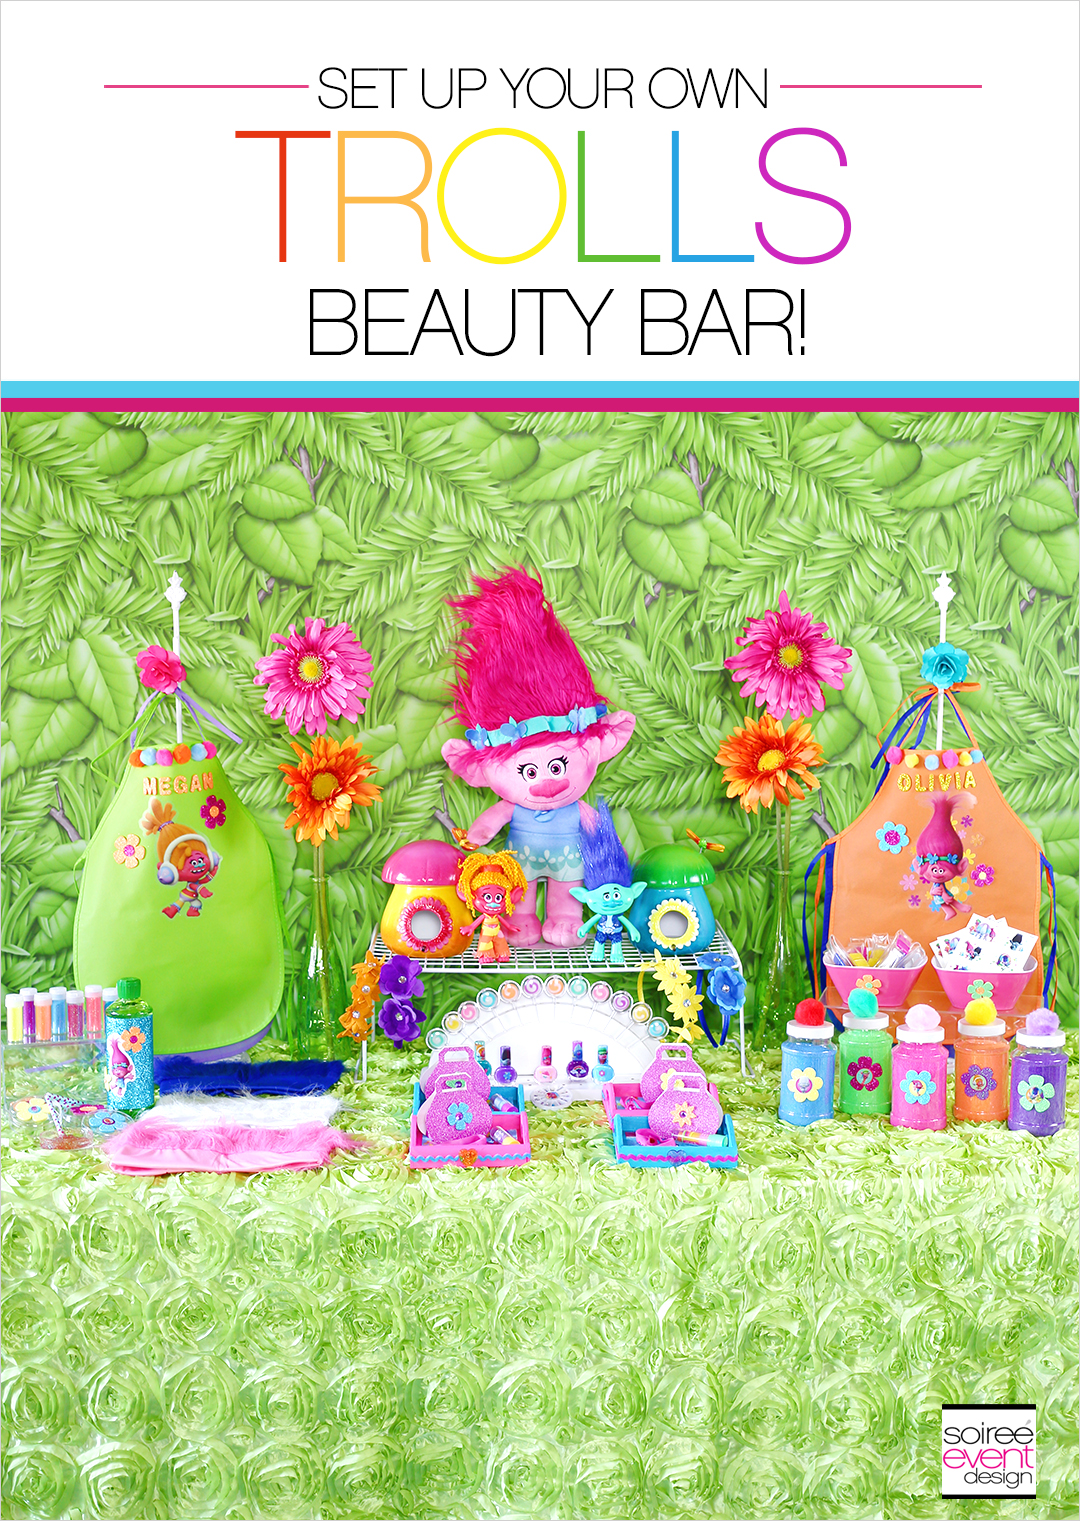 trolls-party-ideas-trolls-beauty-bar